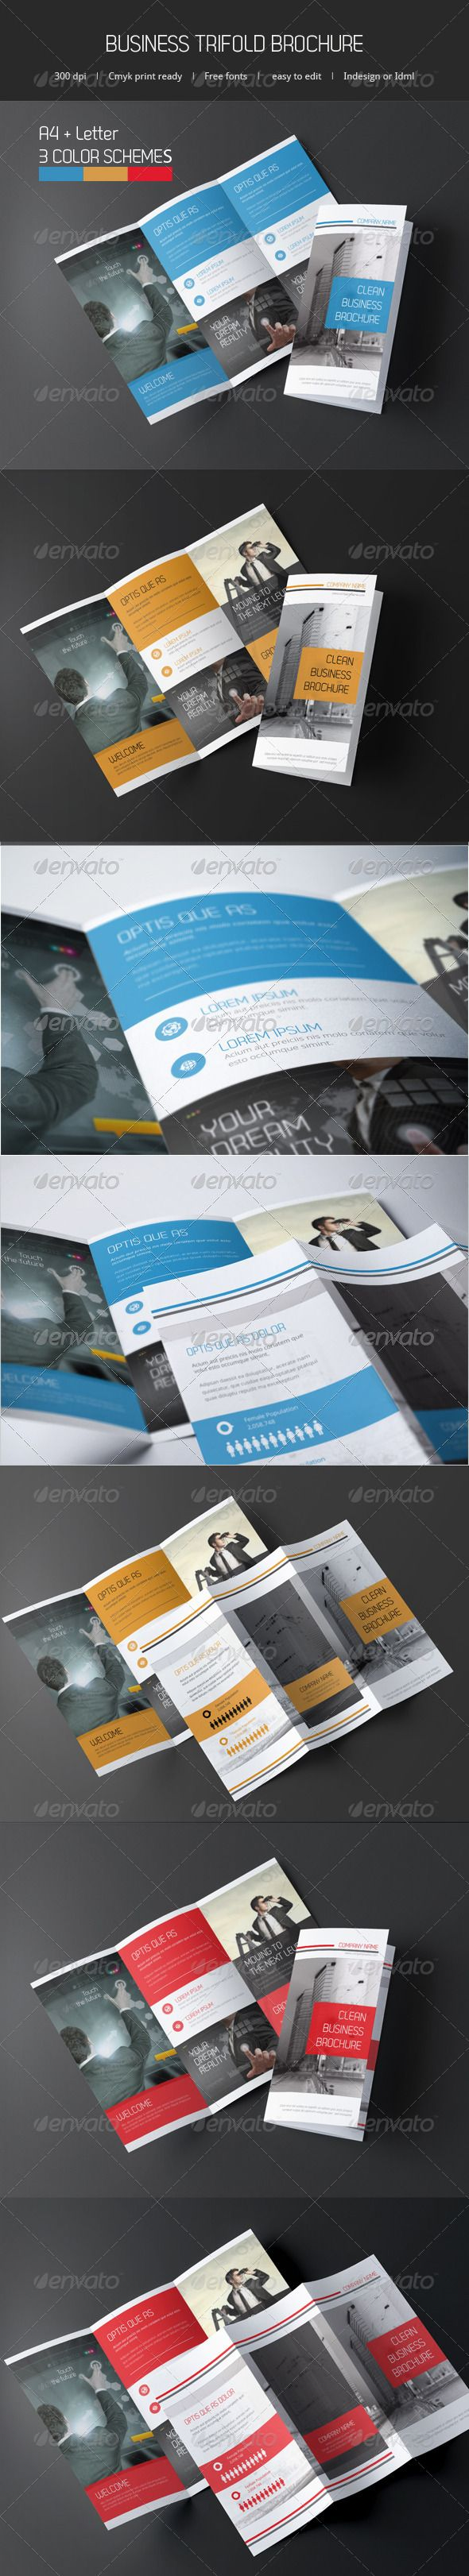 113 best Print Templates images on Pinterest | Print templates ...